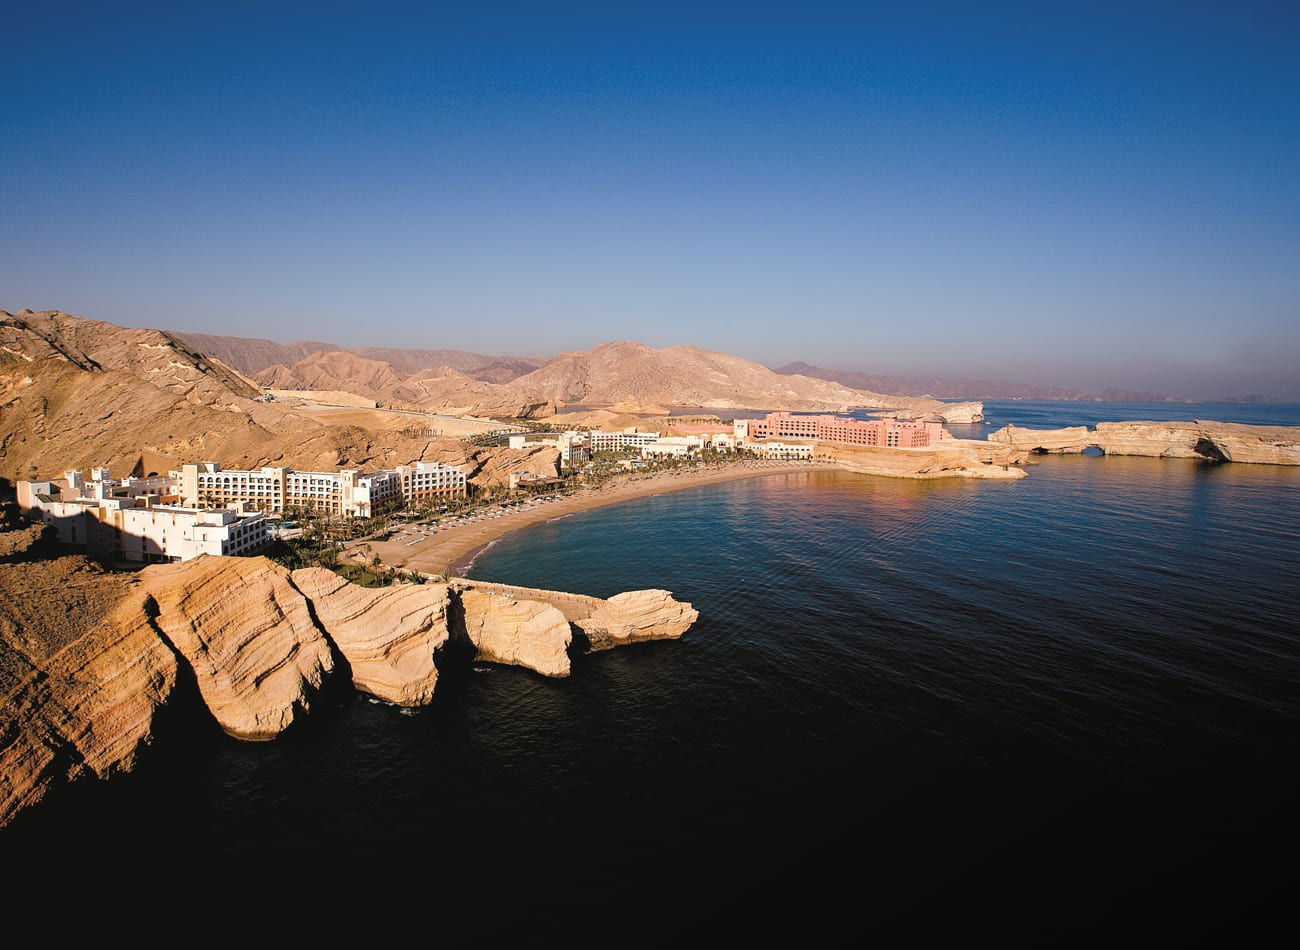 Shangri-La Barr Al Jissah Resort and Spa, Sultanate of Oman | Shangri-La Hotels